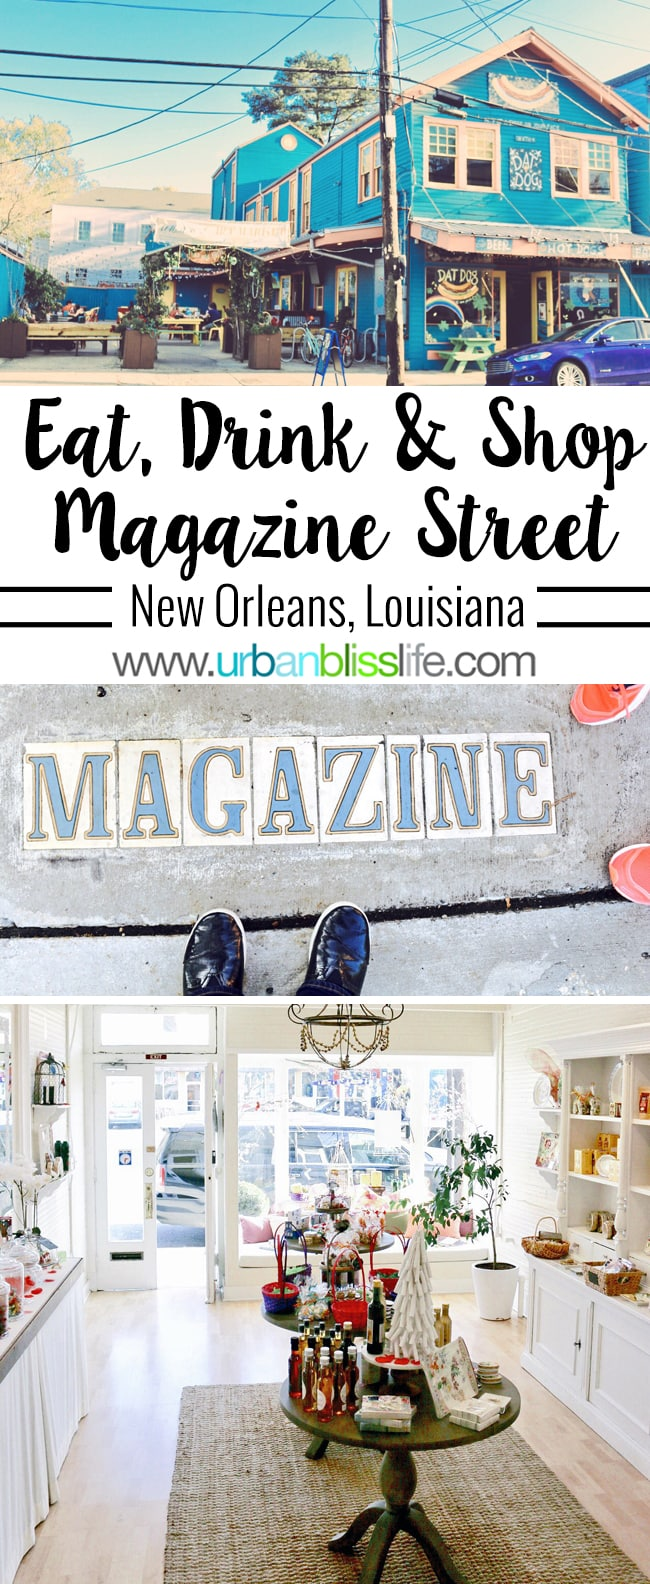 Magazine Street New Orleans, Louisiana, on UrbanBlissLife.com